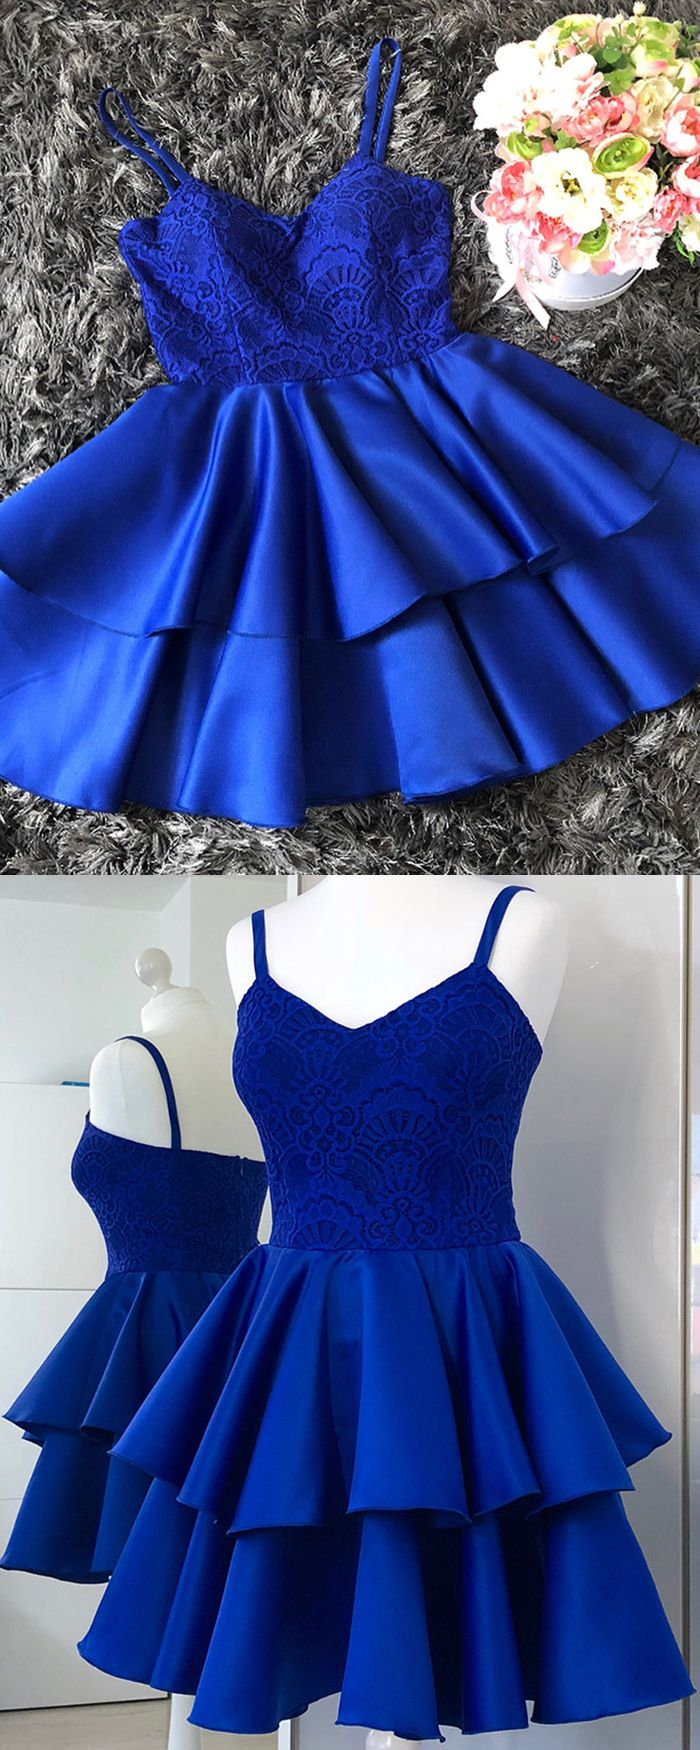 Spaghetti straps royal blue lace bodice homecoming dress with